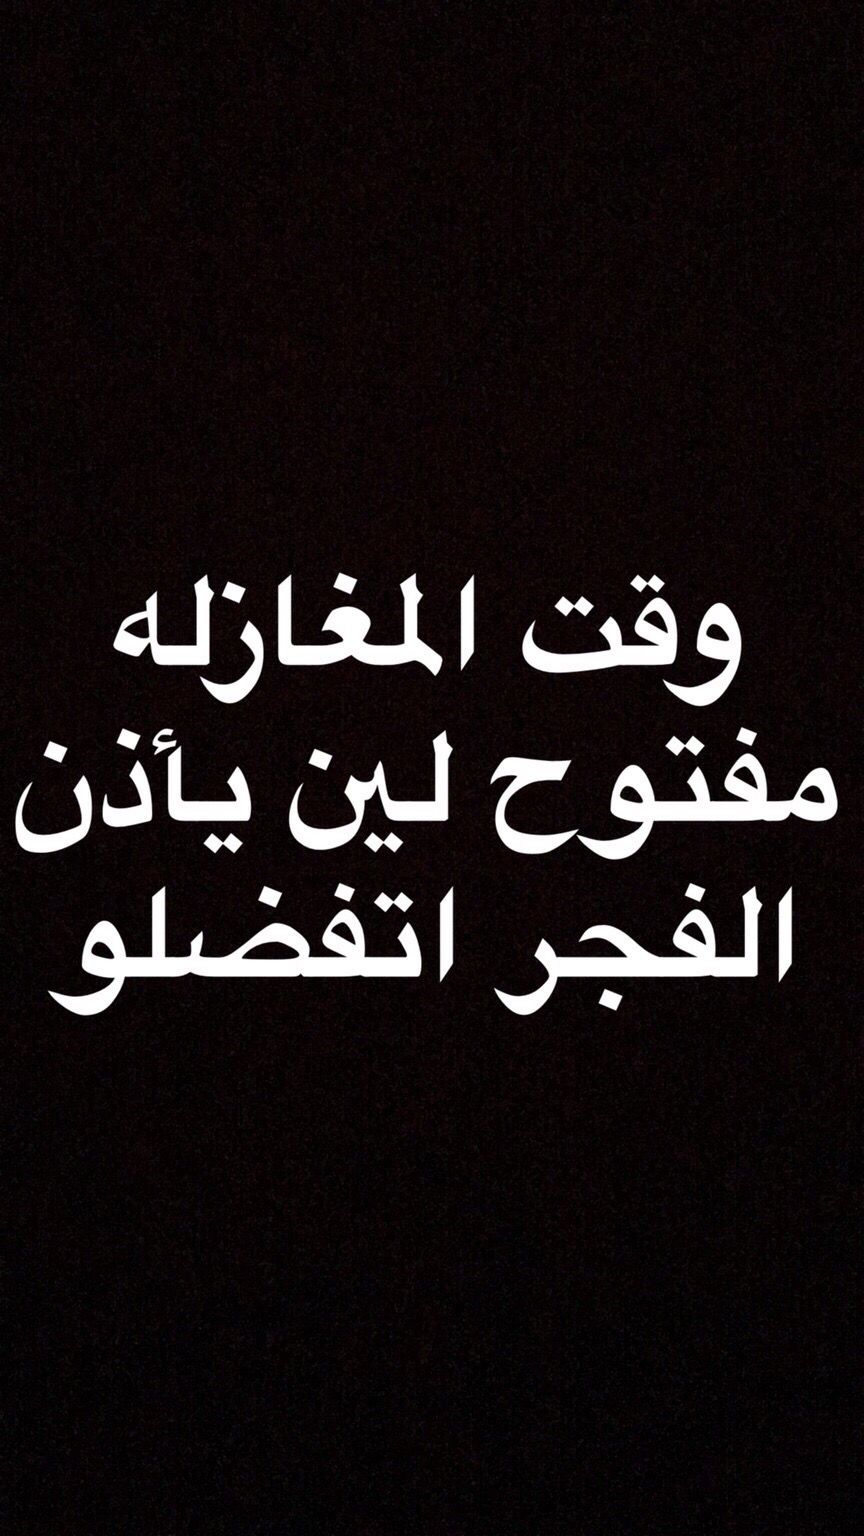 Pin By Salouh On رياكشنات Funny Arabic Quotes Funny Quotes Mood Quotes